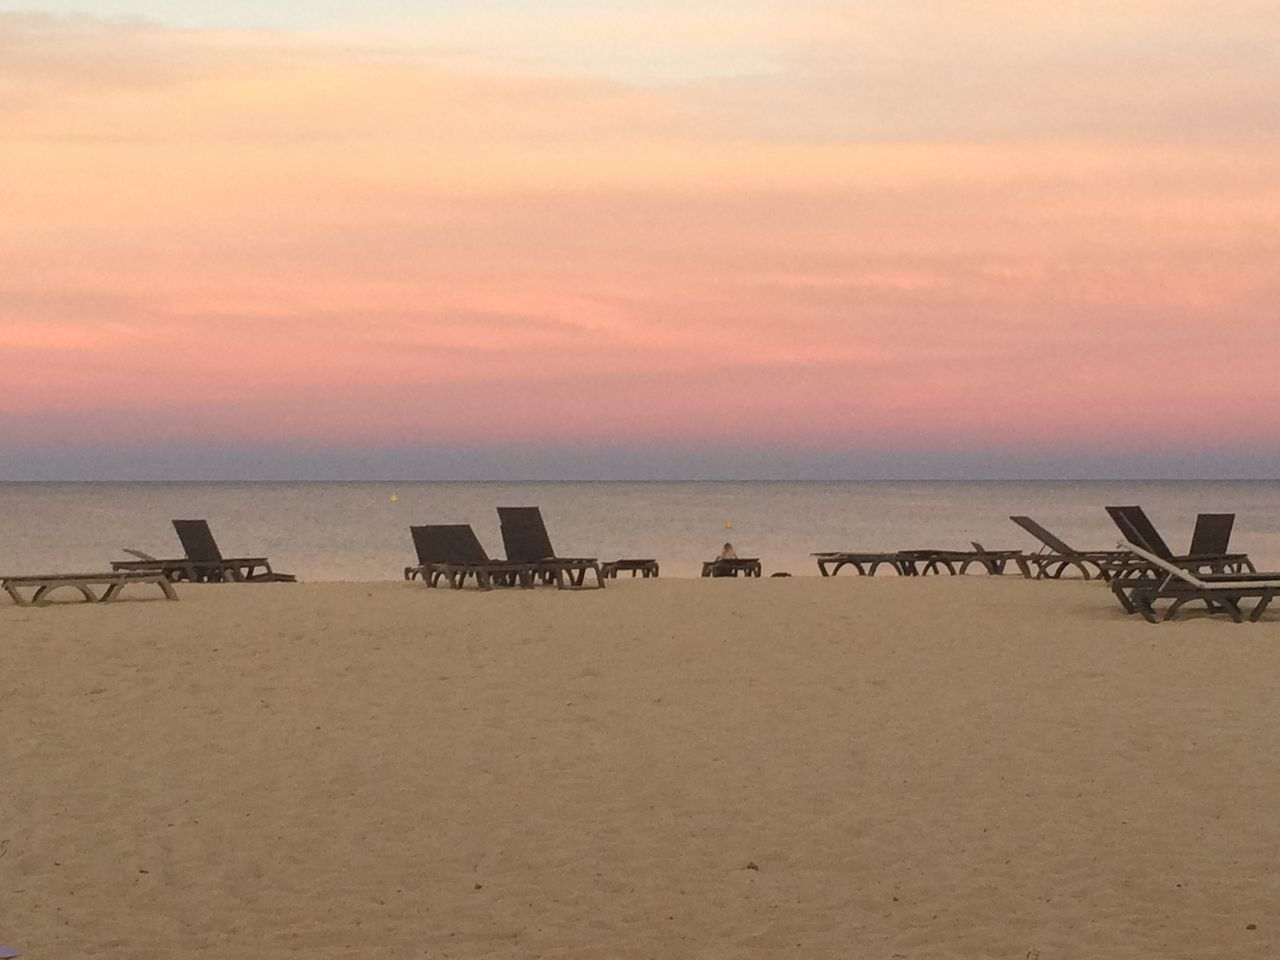 Empty Deck Chairs On Sand At Beach Against Pink Sky During Sunset